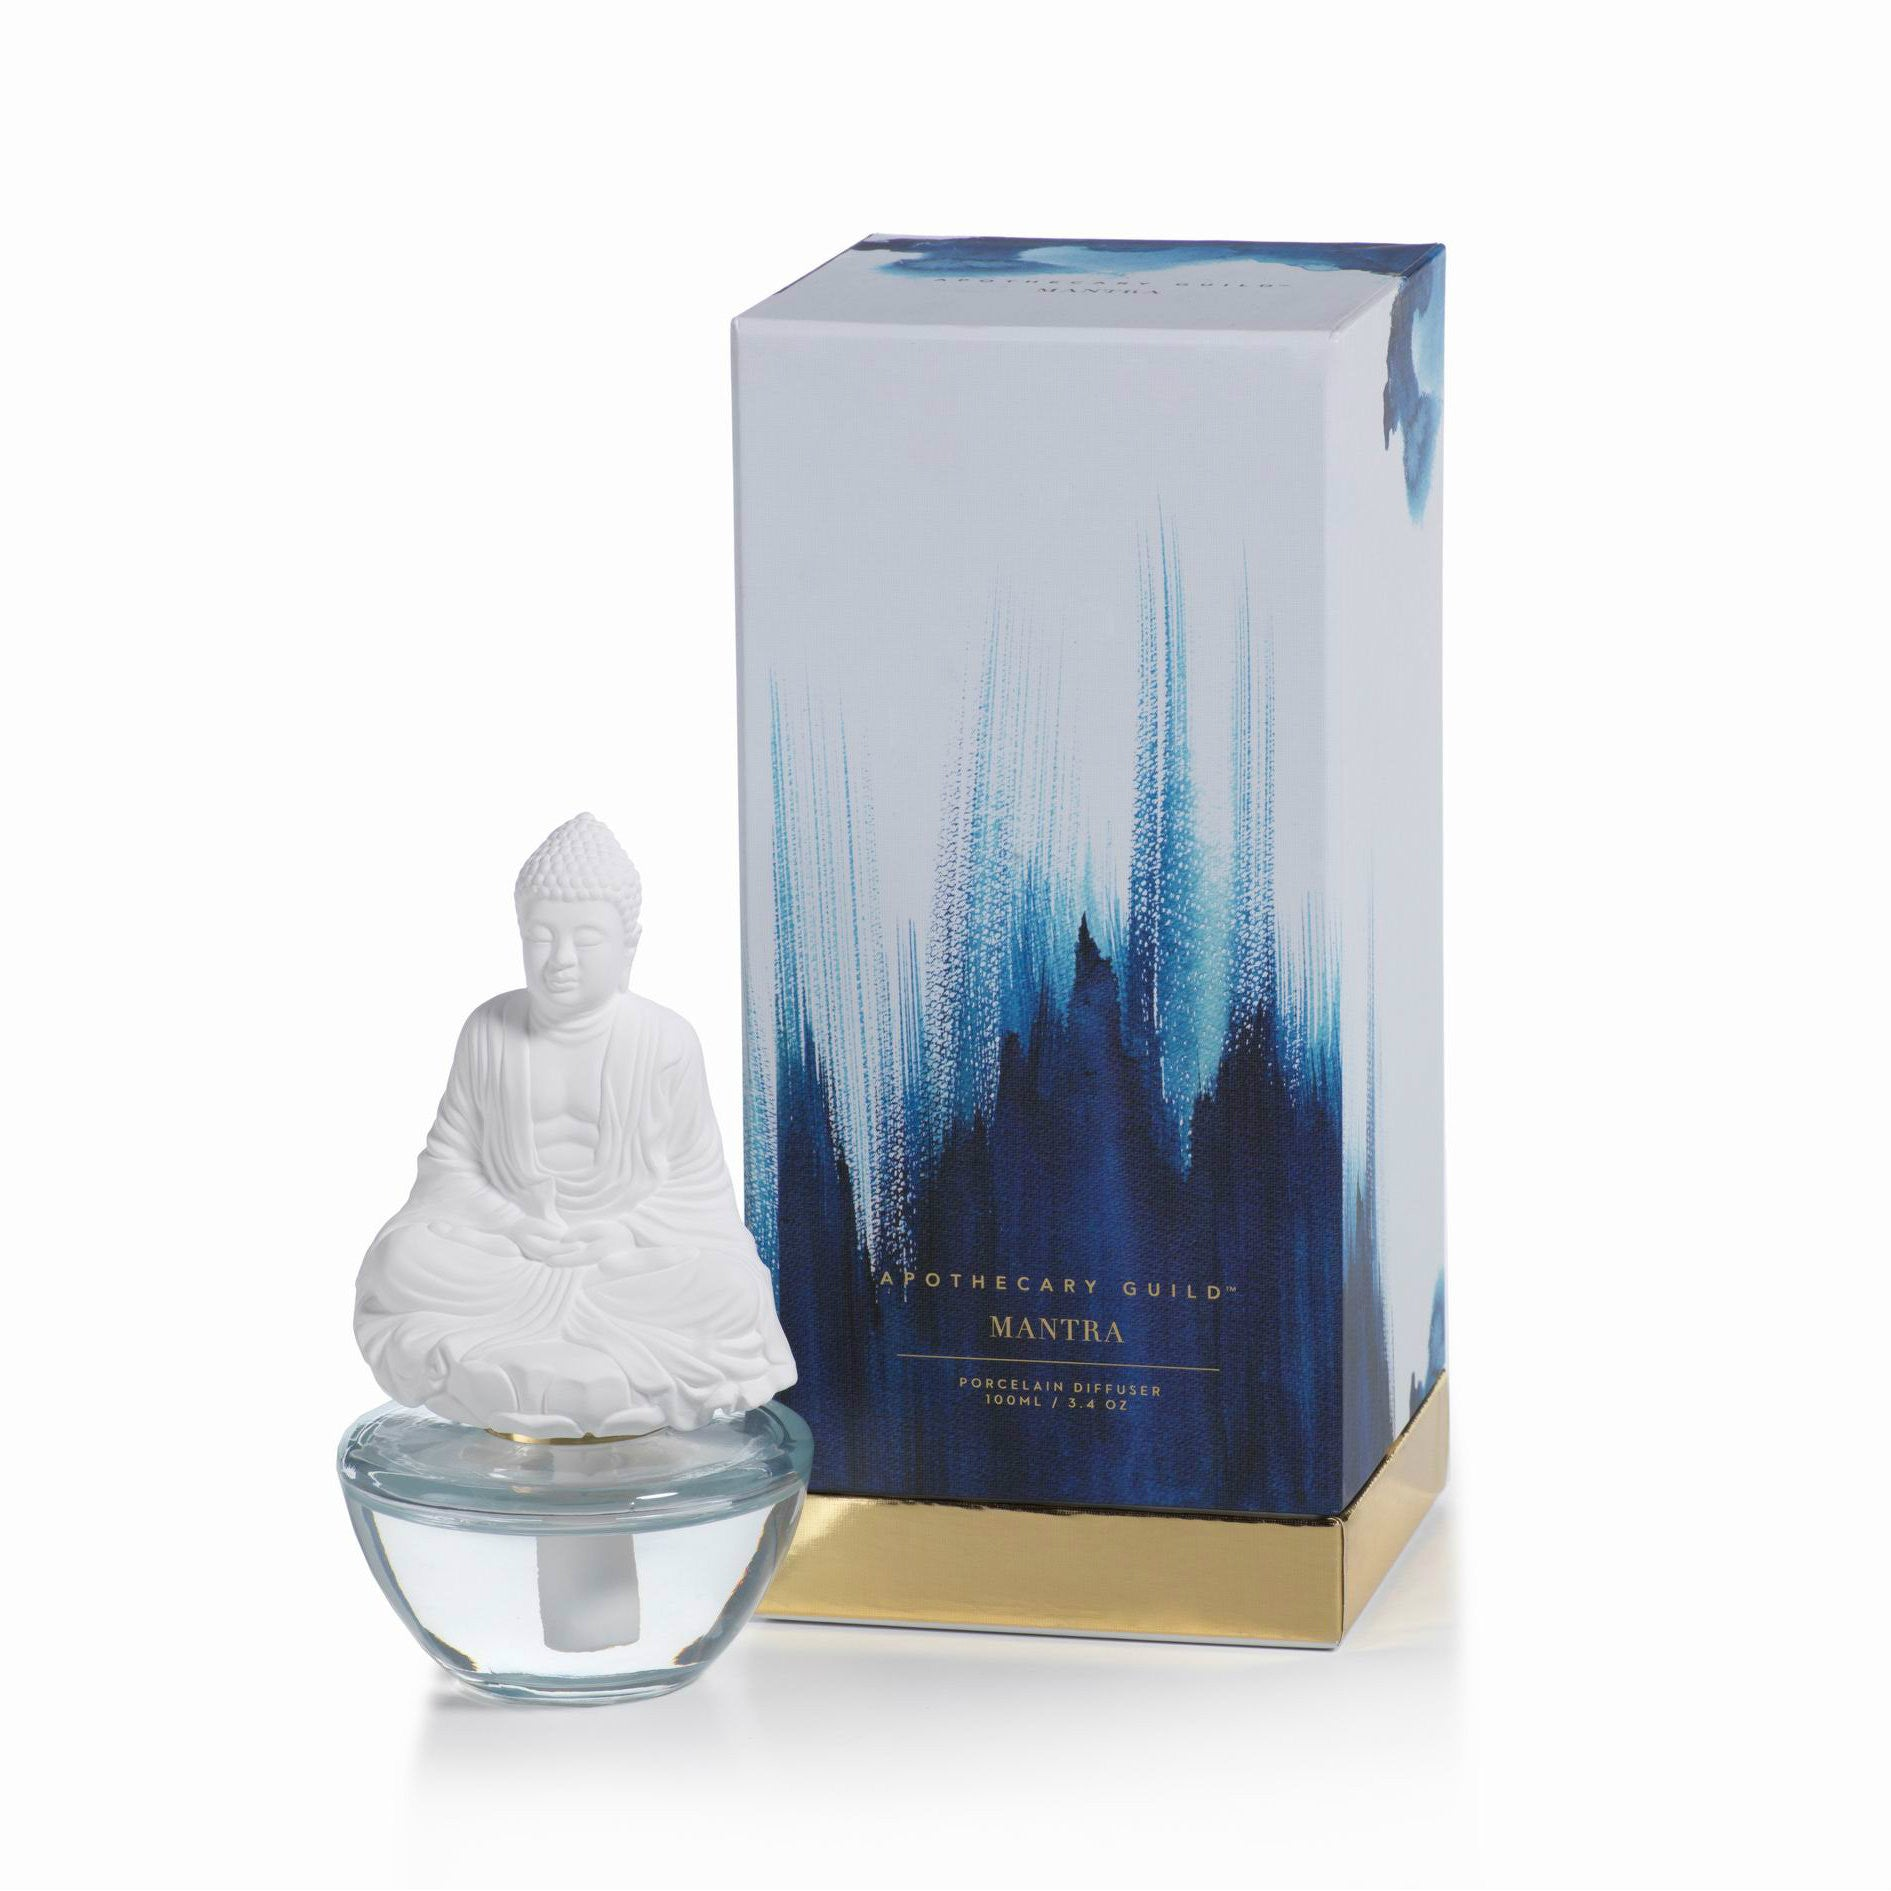 Apothecary Guild Mantra Buddha Porcelain Diffuser - Blue Lotus - CARLYLE AVENUE